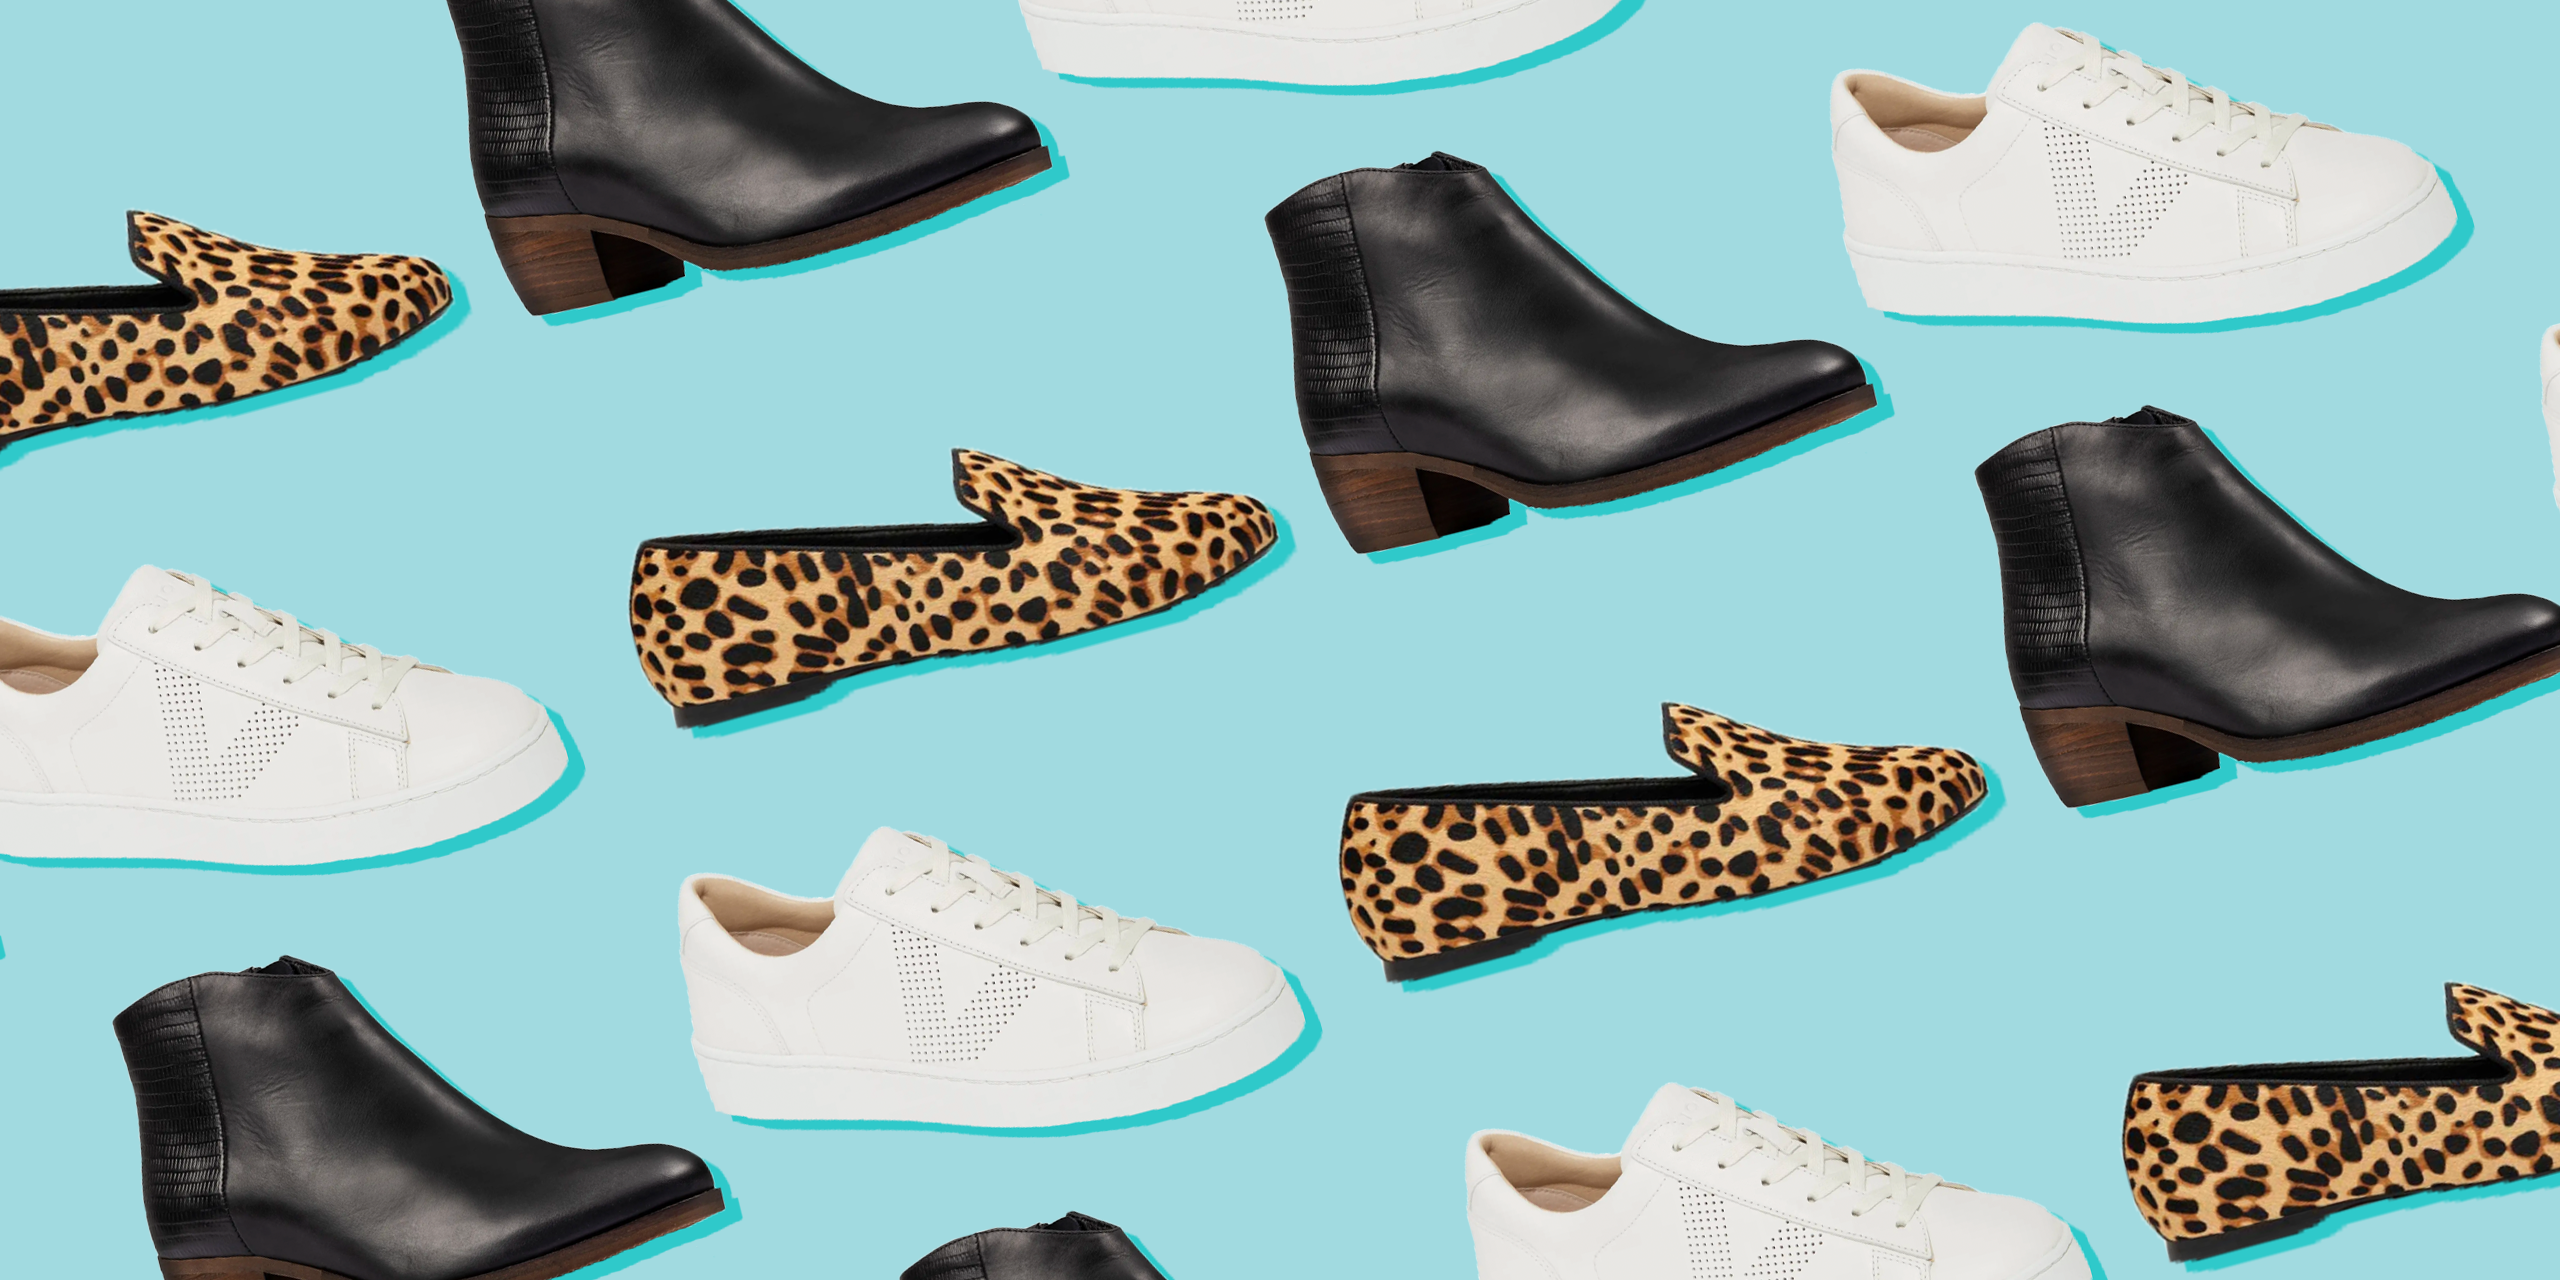 5 Best Shoes for Flat Feet in 5, According to Podiatrists